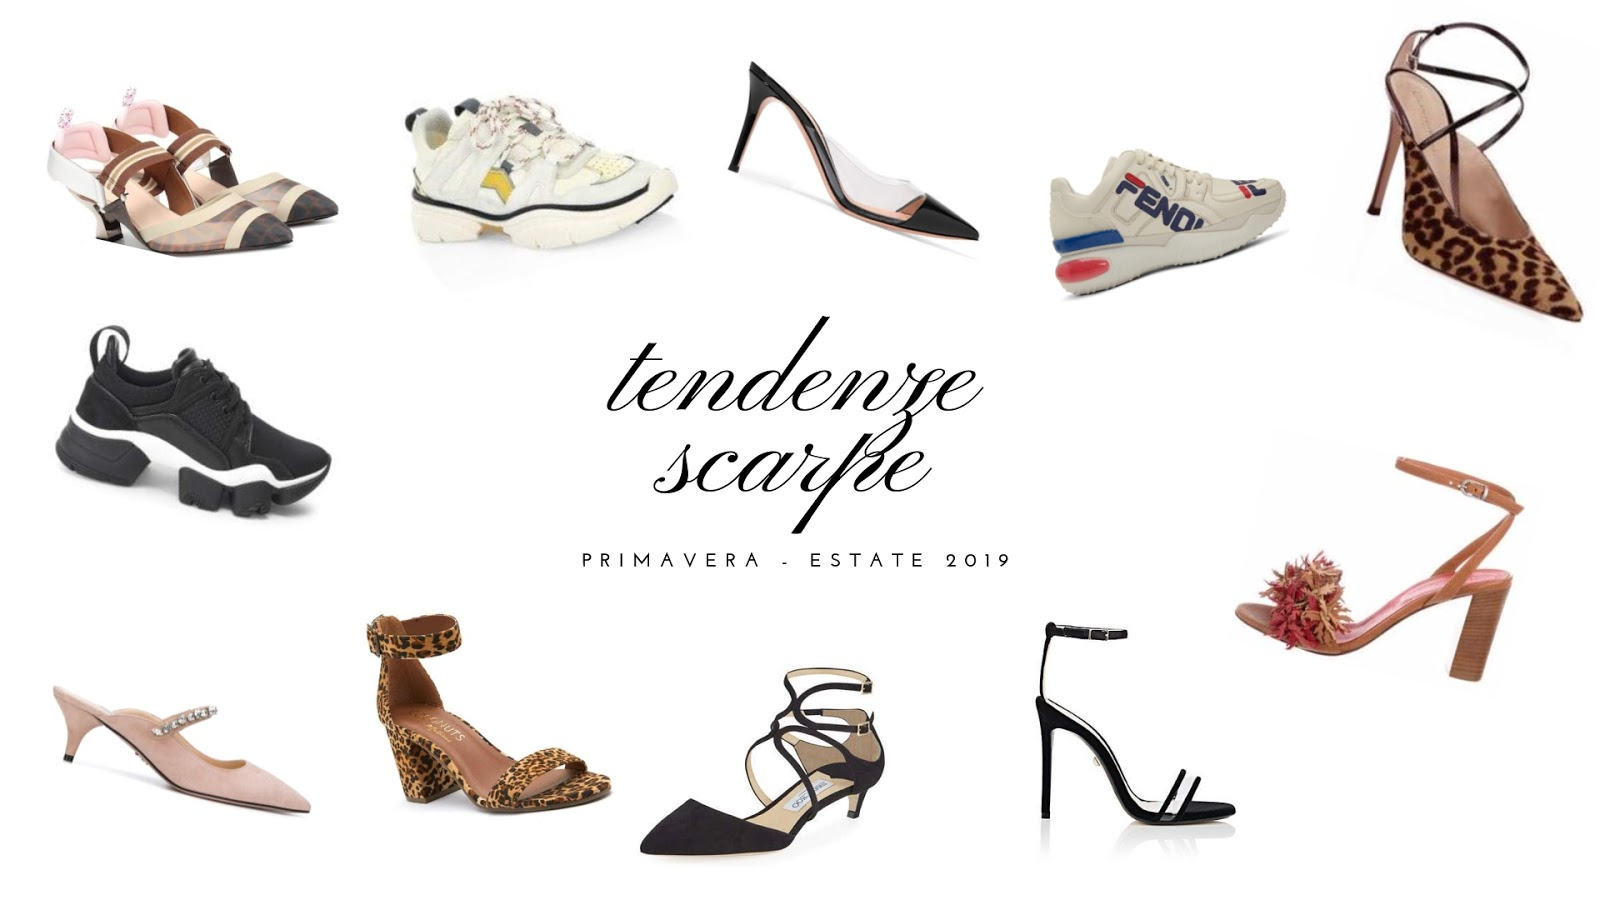 tendenze scarpe primavera -estate 2019, fashion need, Valentina Rago, fashion blog milano